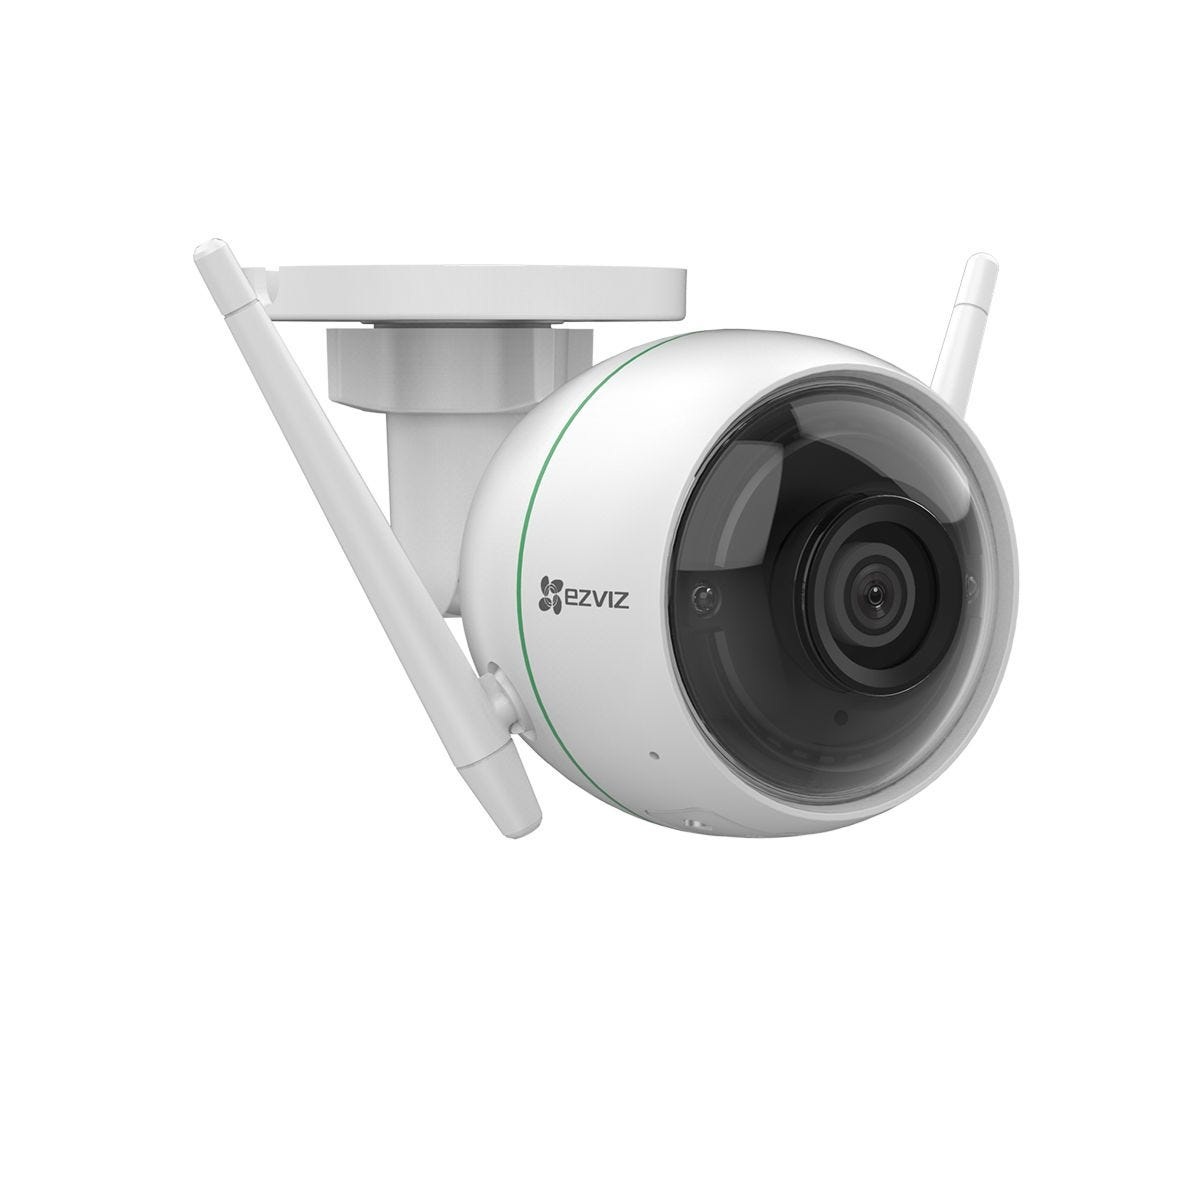 EZVIZ Full HD Wi-Fi Outdoor Smart Home Security Bullet Camera